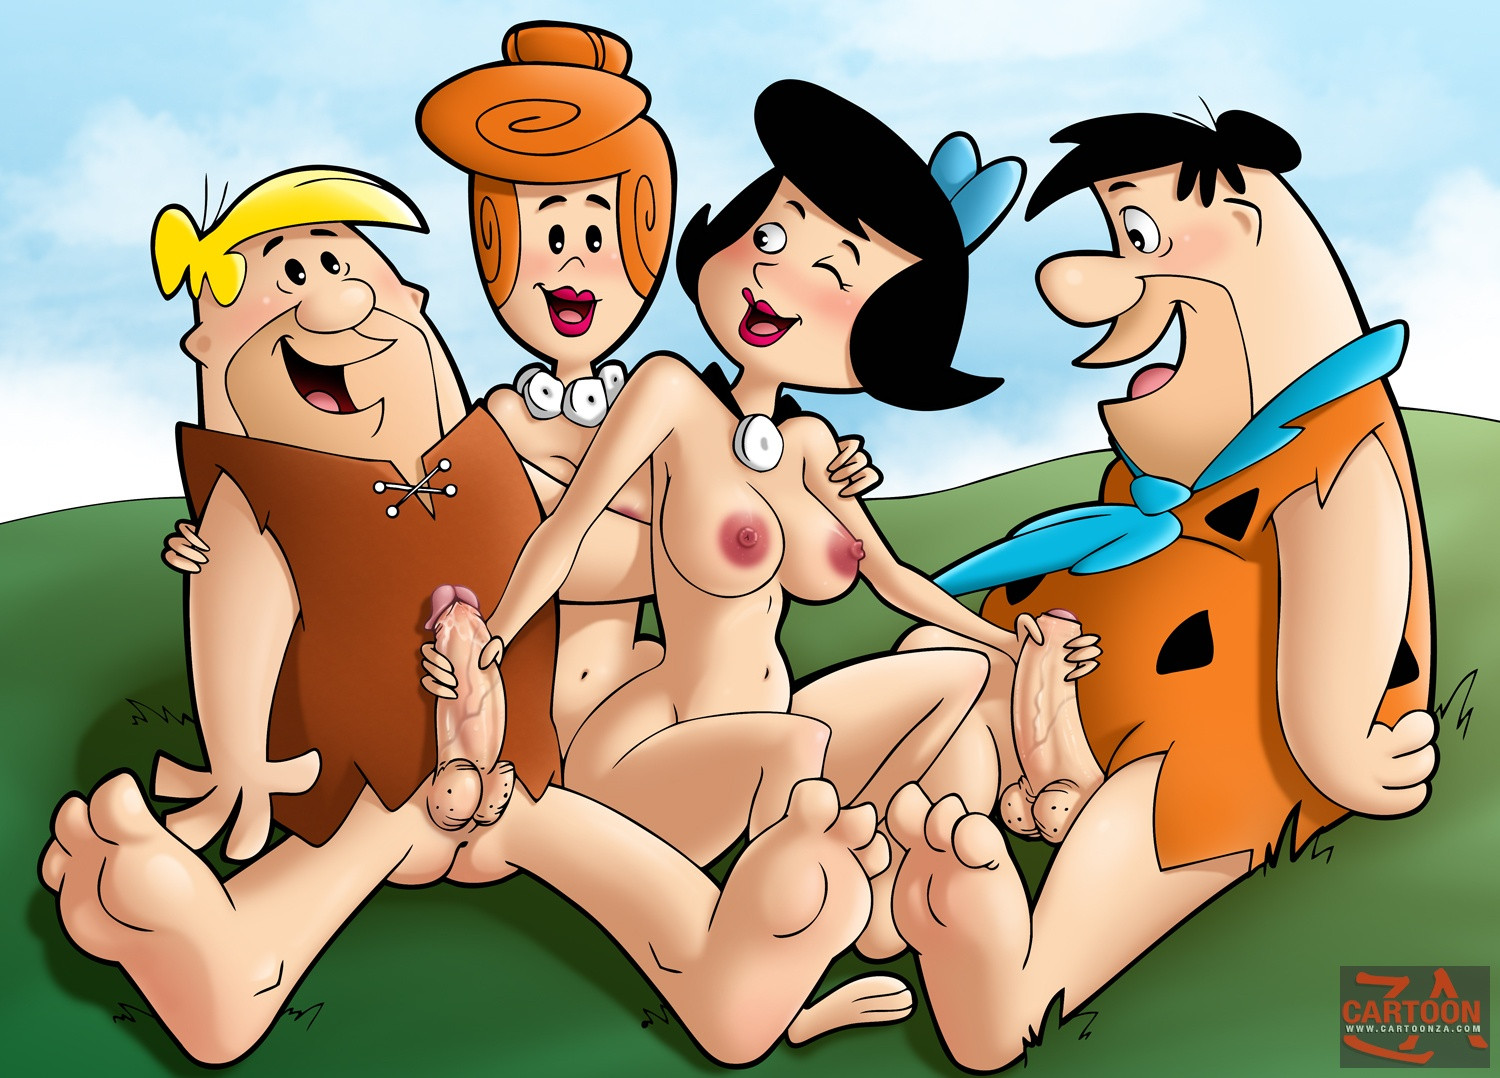 baixar HQ Erótico dos Flintstones   Cartoon Comic download